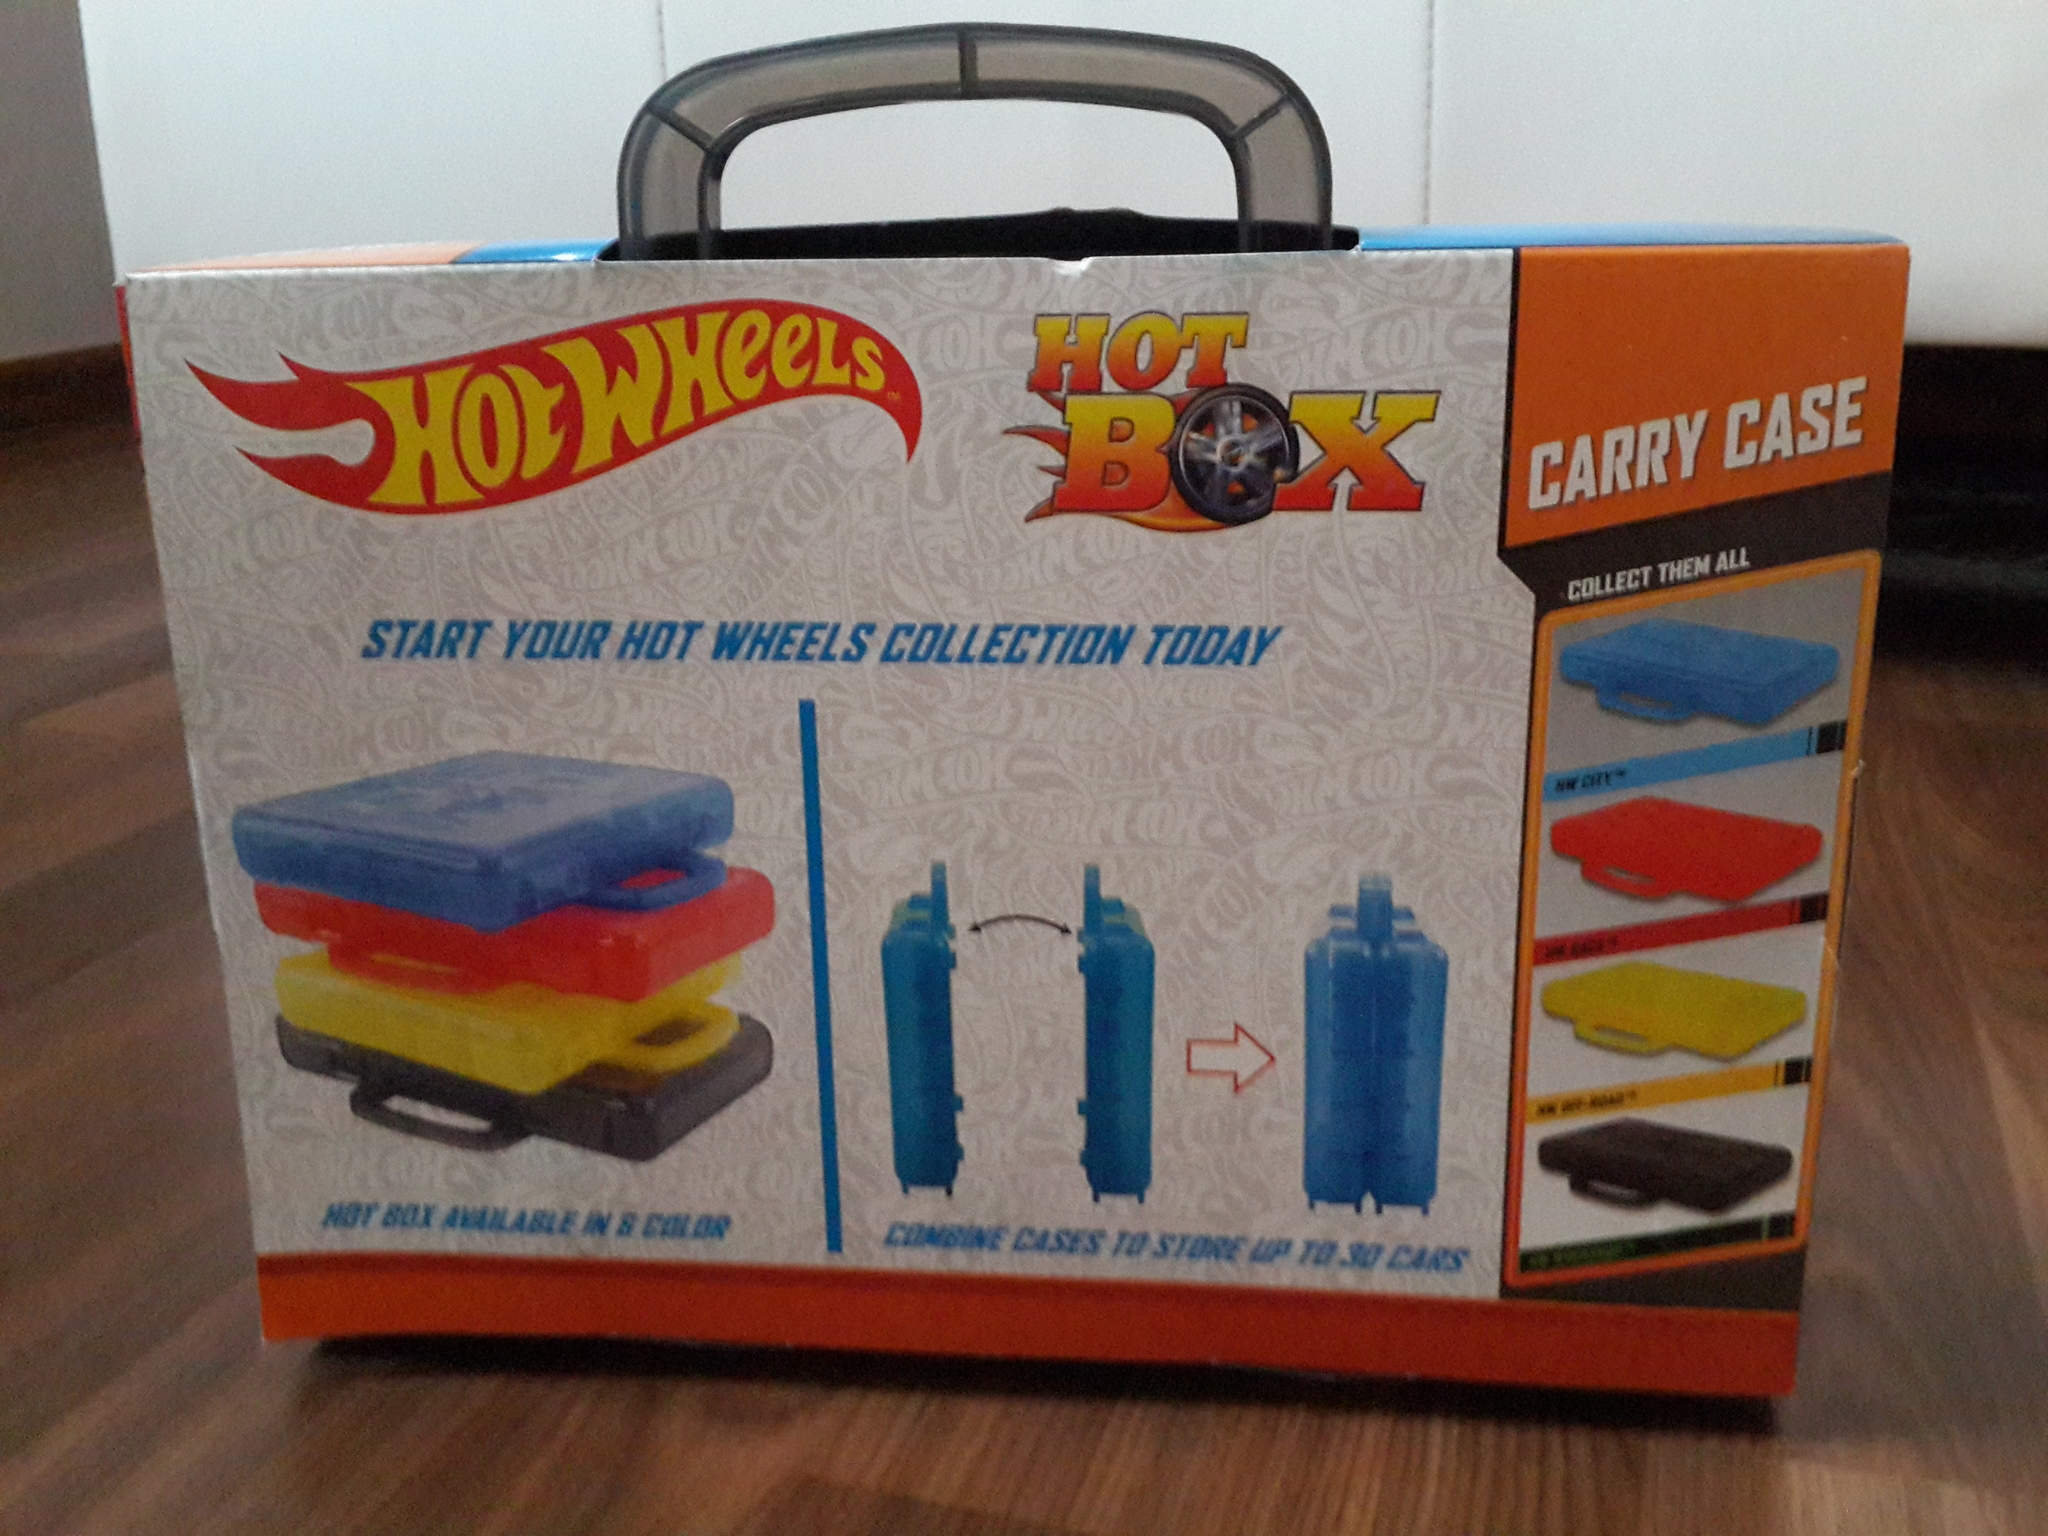 Jual hot wheels hotwheels box carry case bonus 2 cars for 2 box auto con stanza bonus